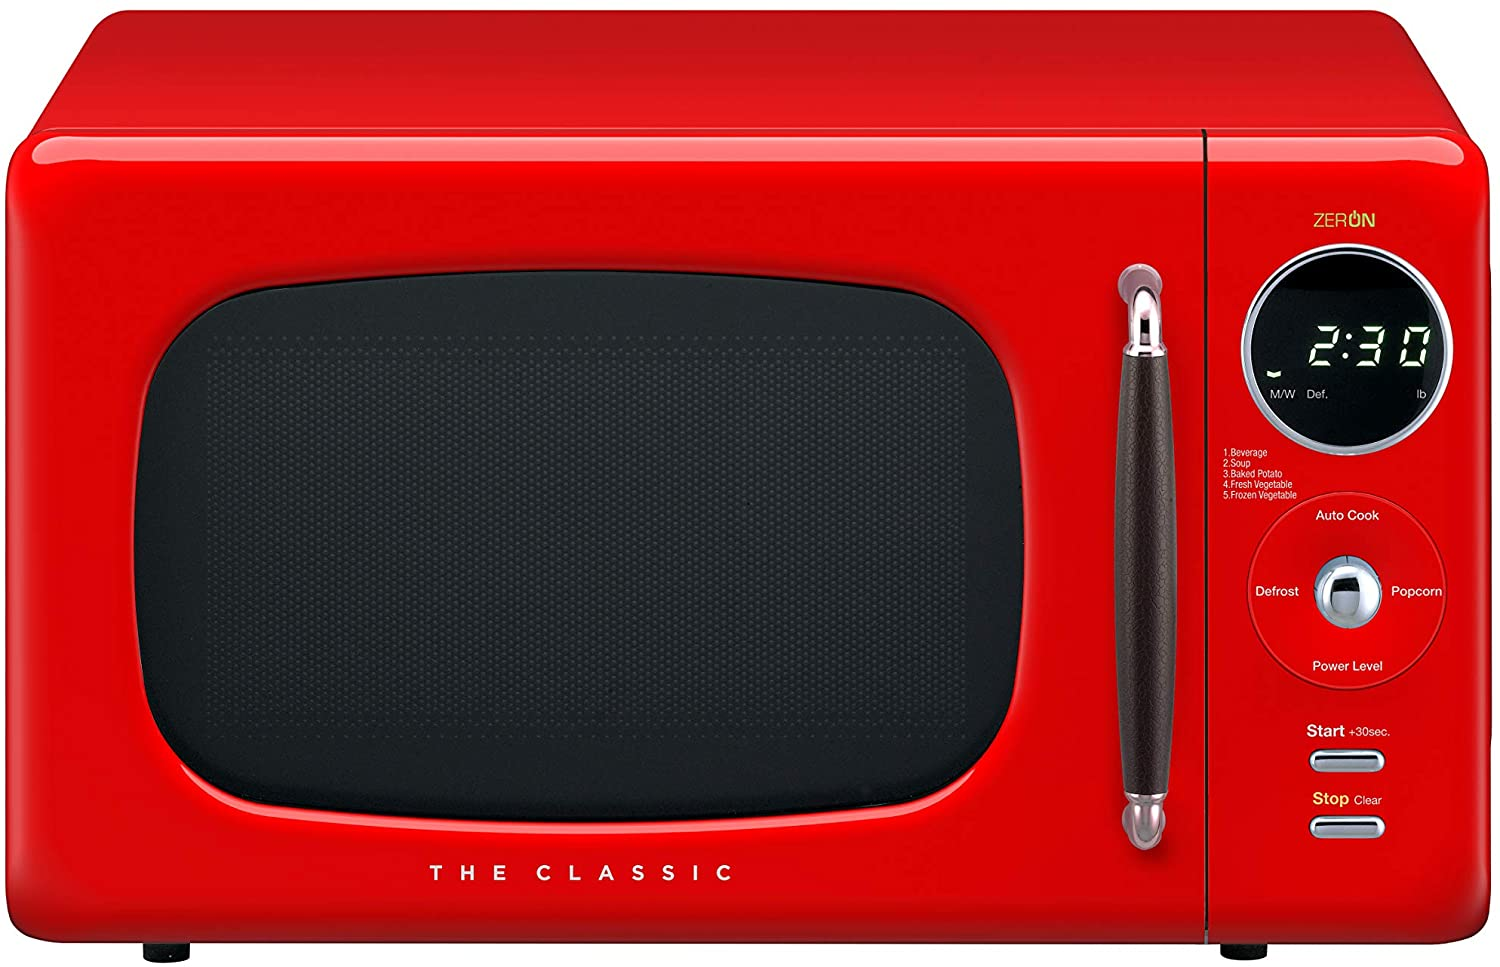 A bright red Daewoo Compact Microwave oven